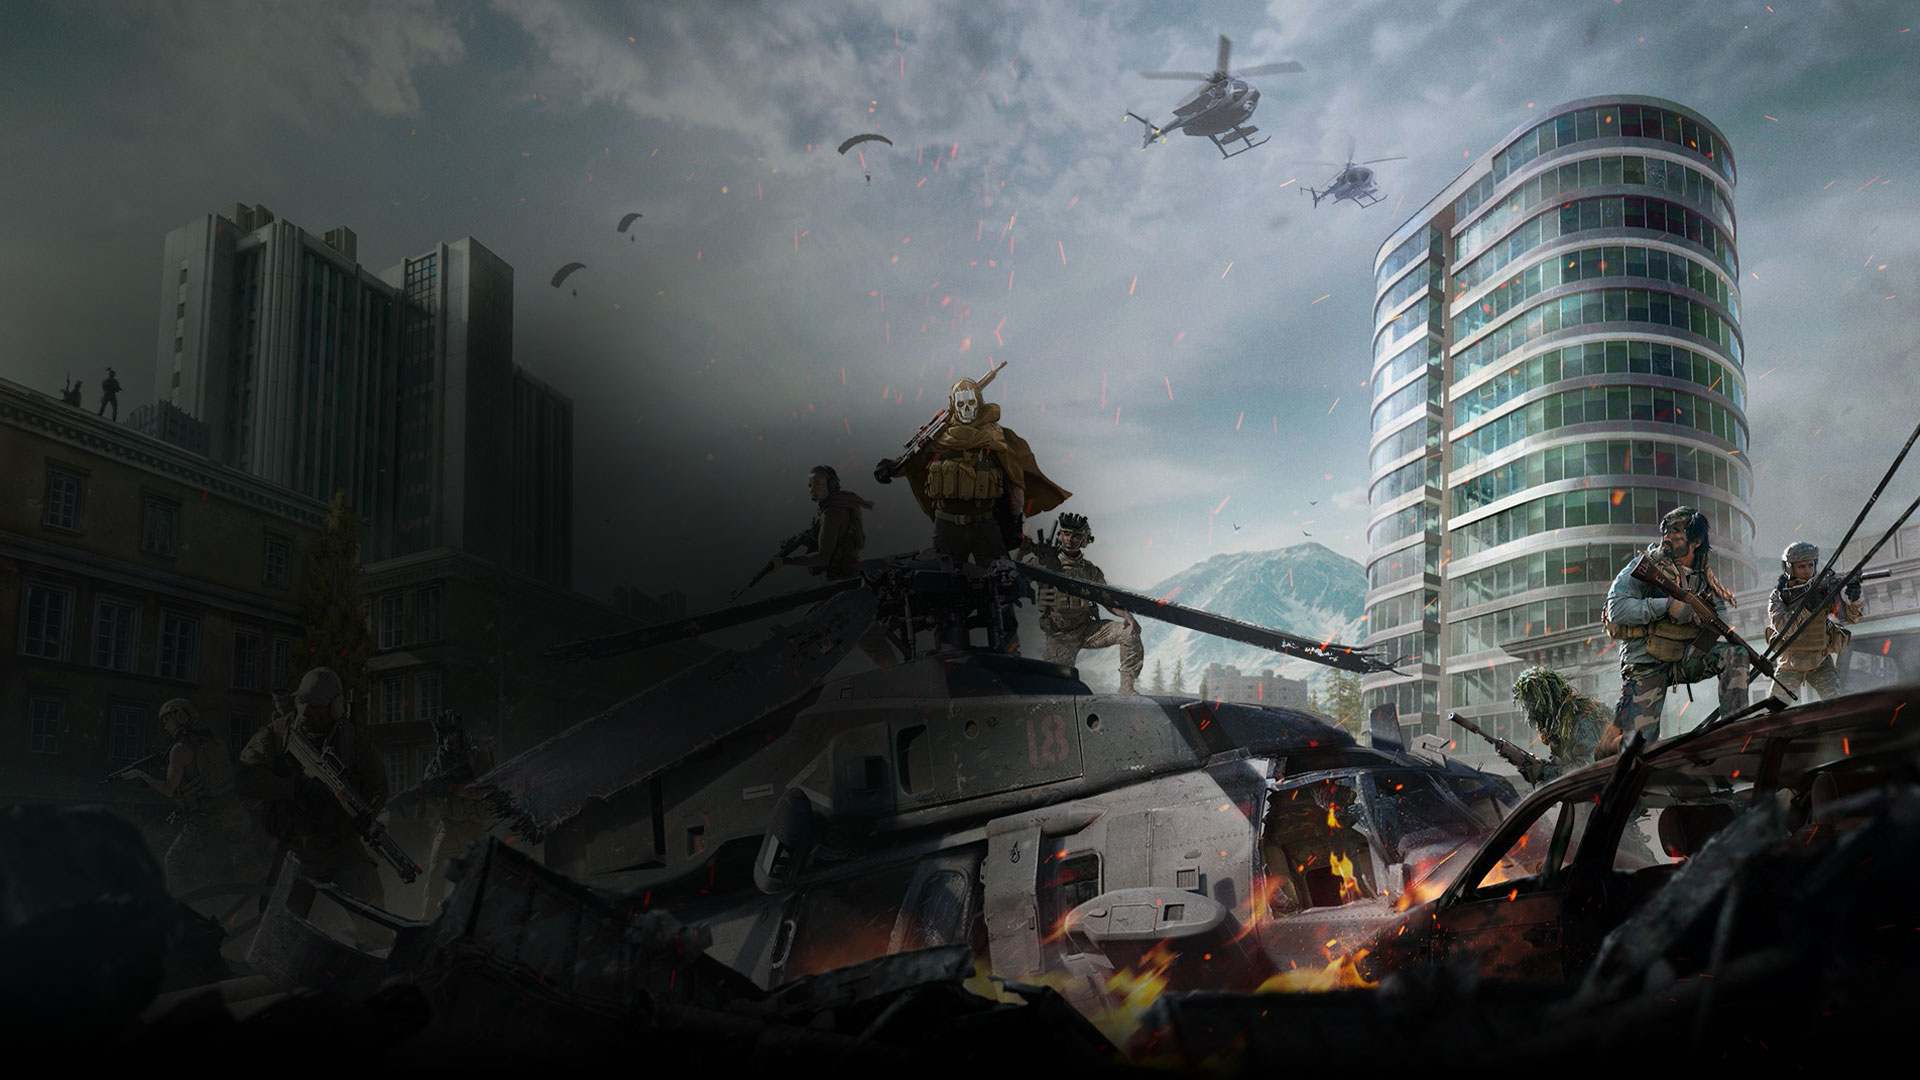 Call of Duty: Modern Warfare characters stand atop a tank in the middle of a war torn city.